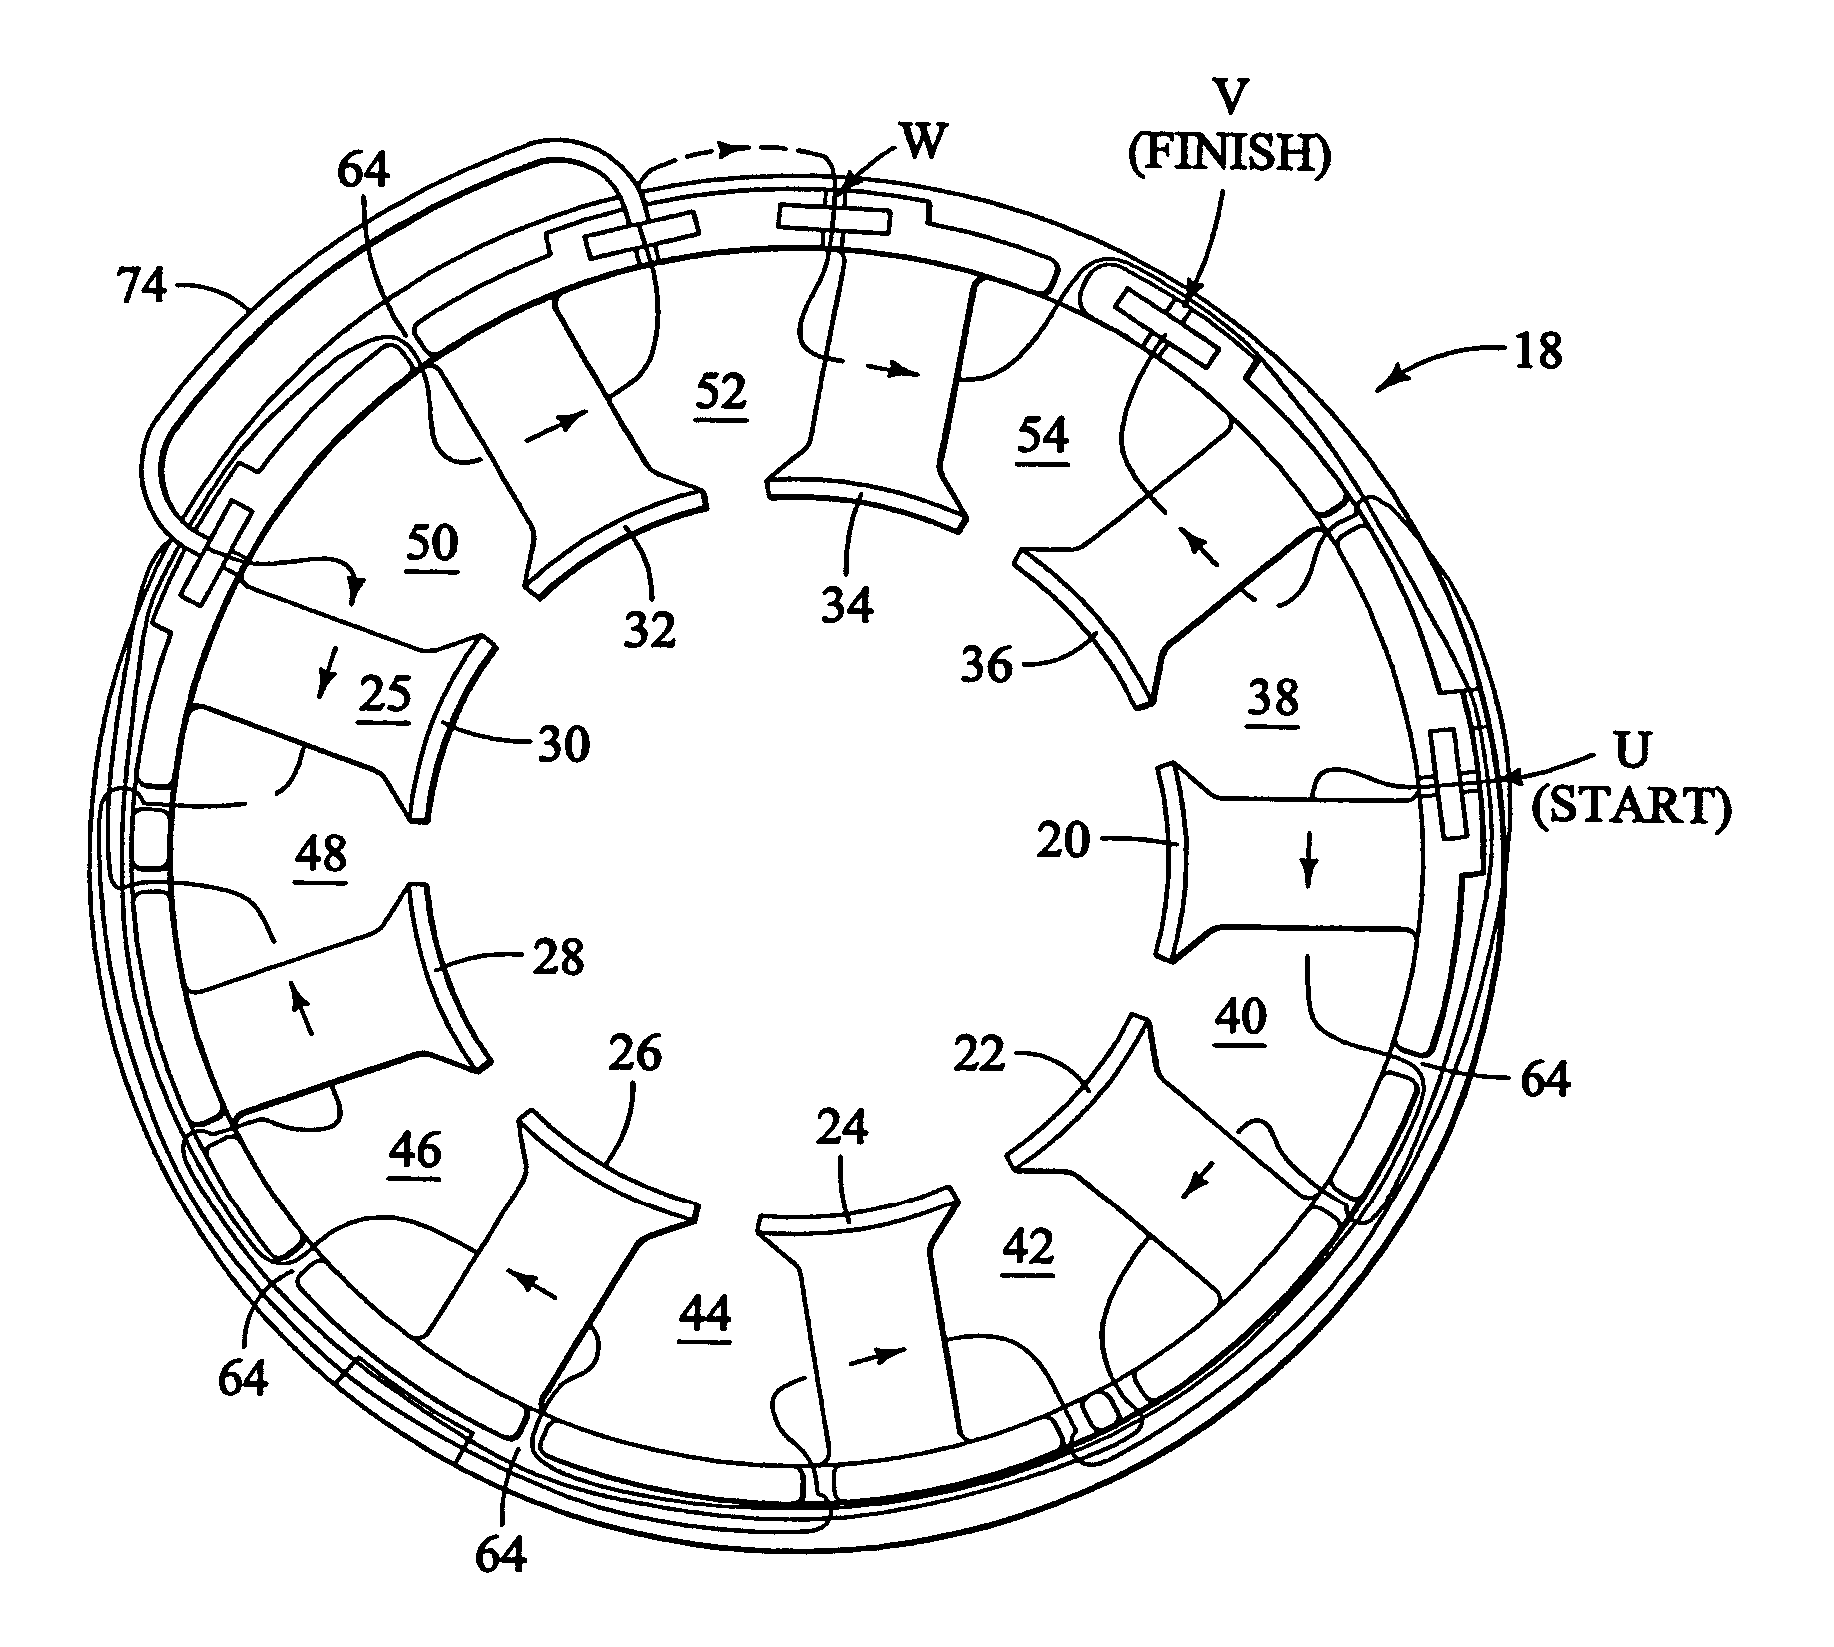 US07152301 20061226 D00000 patent us7152301 method for winding a stator of multi phase 3 phase motor wiring diagram 12 leads at webbmarketing.co